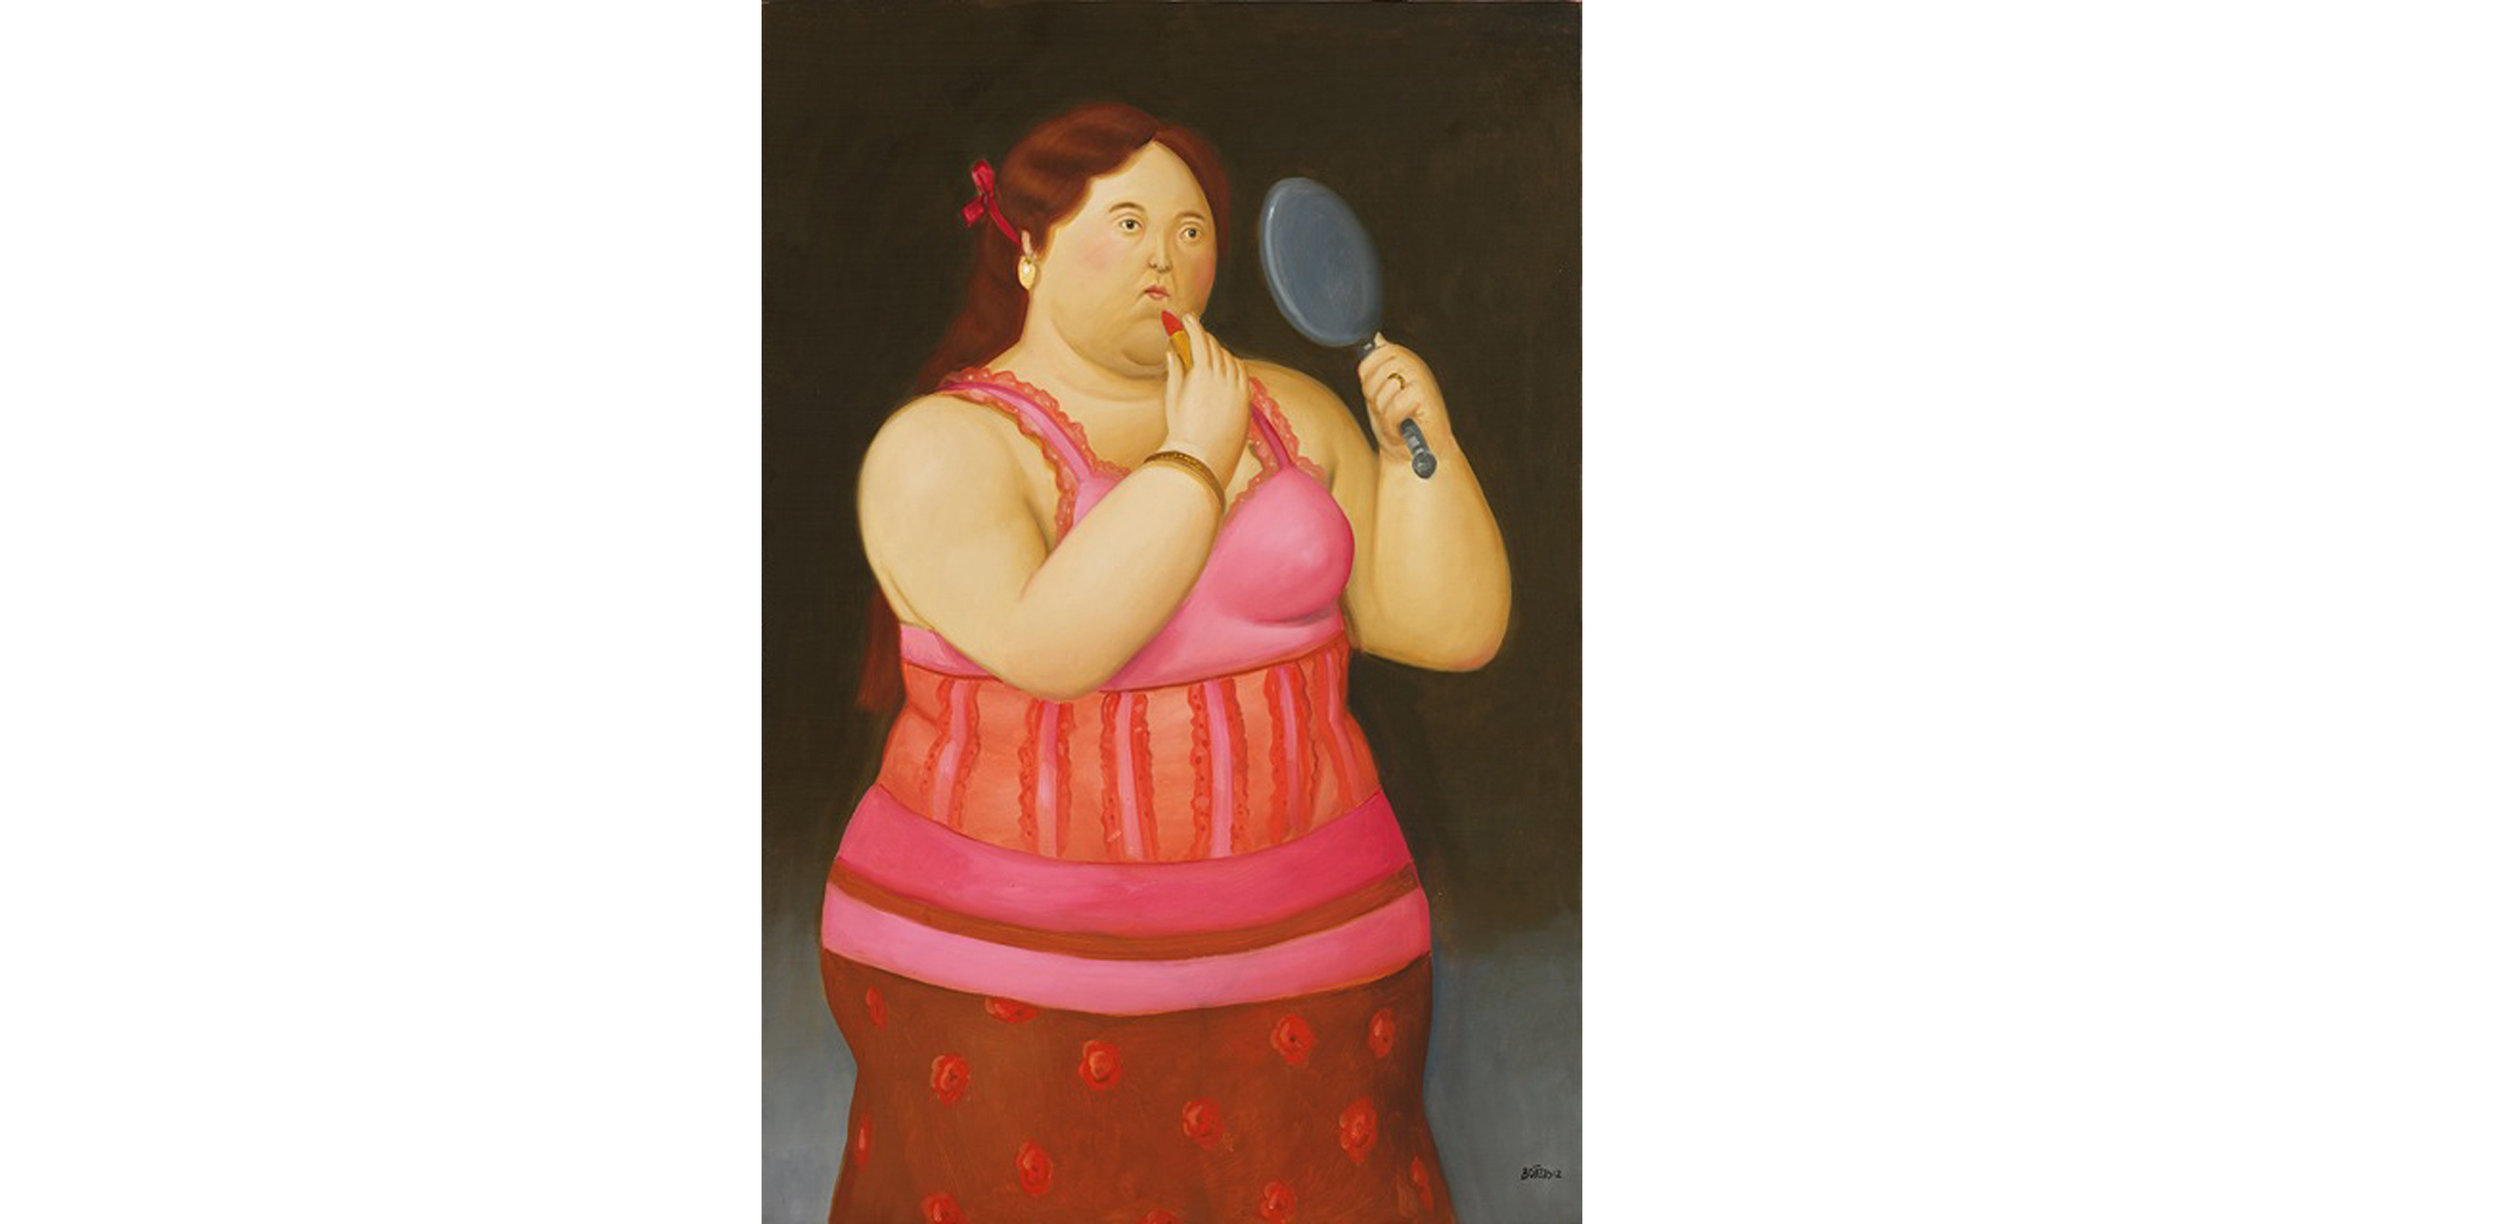 BOTERO_108_Woman_With_Lipstick2.jpg